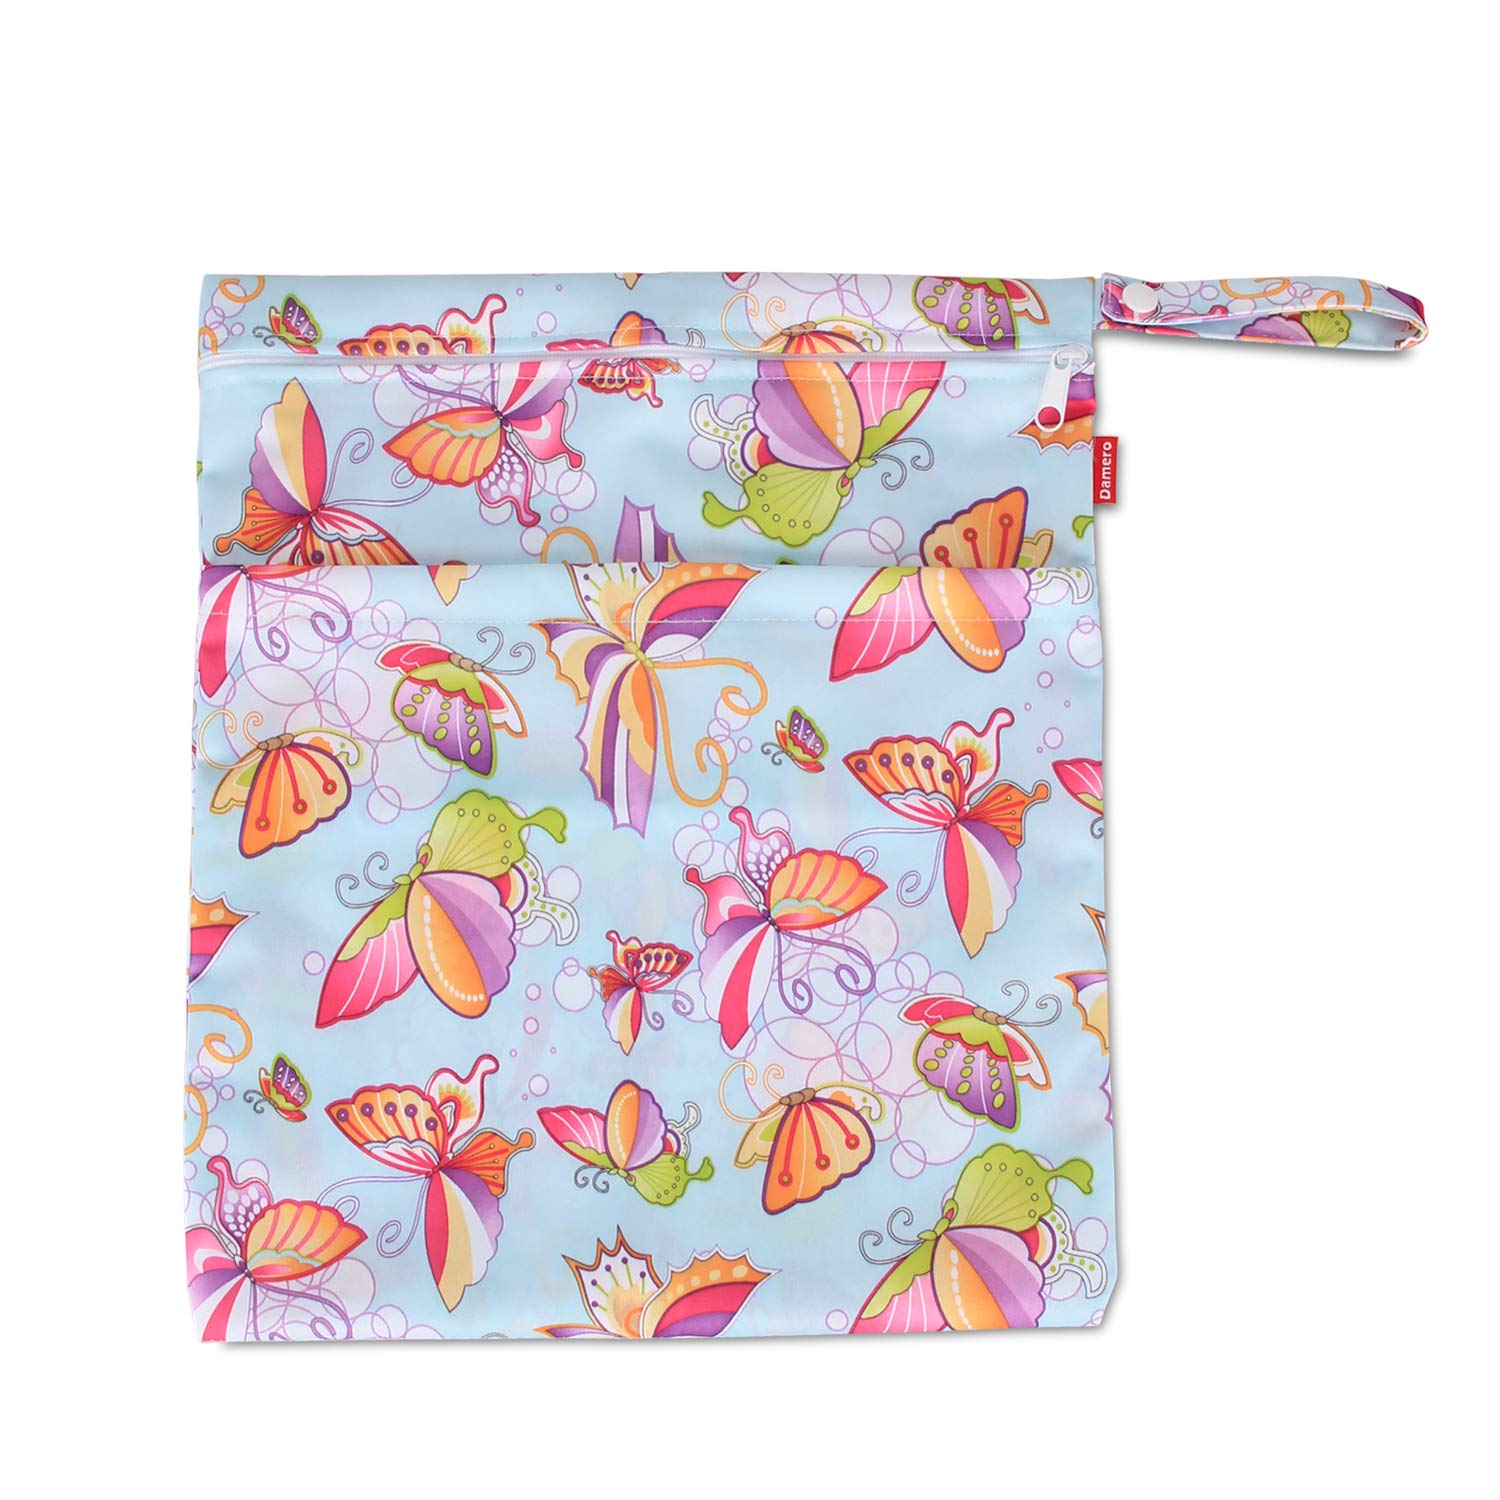 Clothes Pumping Parts Reusable and Water-resistant Travel Wet and Dry Bag with Handle for Cloth Diaper Damero Cloth Diaper Wet Dry Bags Medium,Colorful Butterfly Swimsuit and More